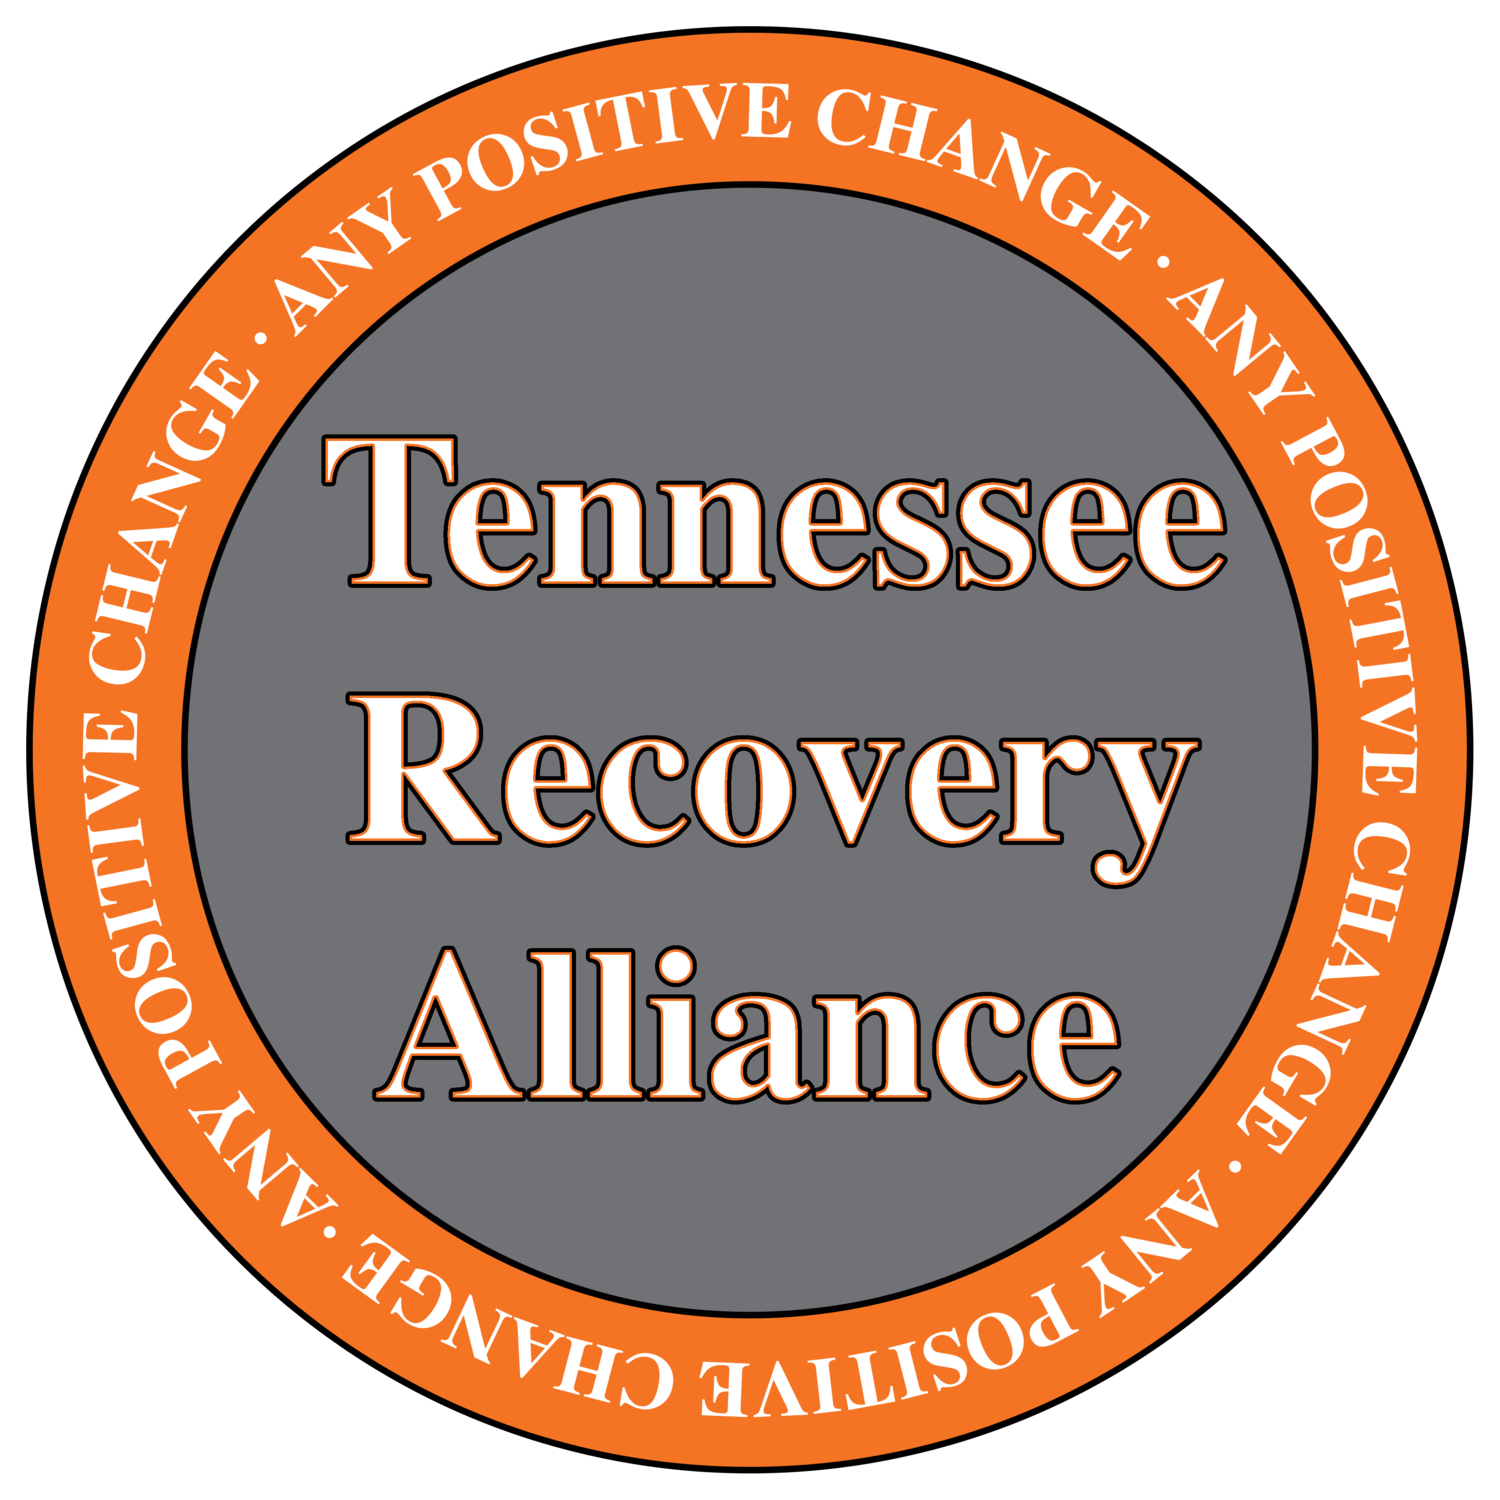 TENNESSEE RECOVERY ALLIANCE